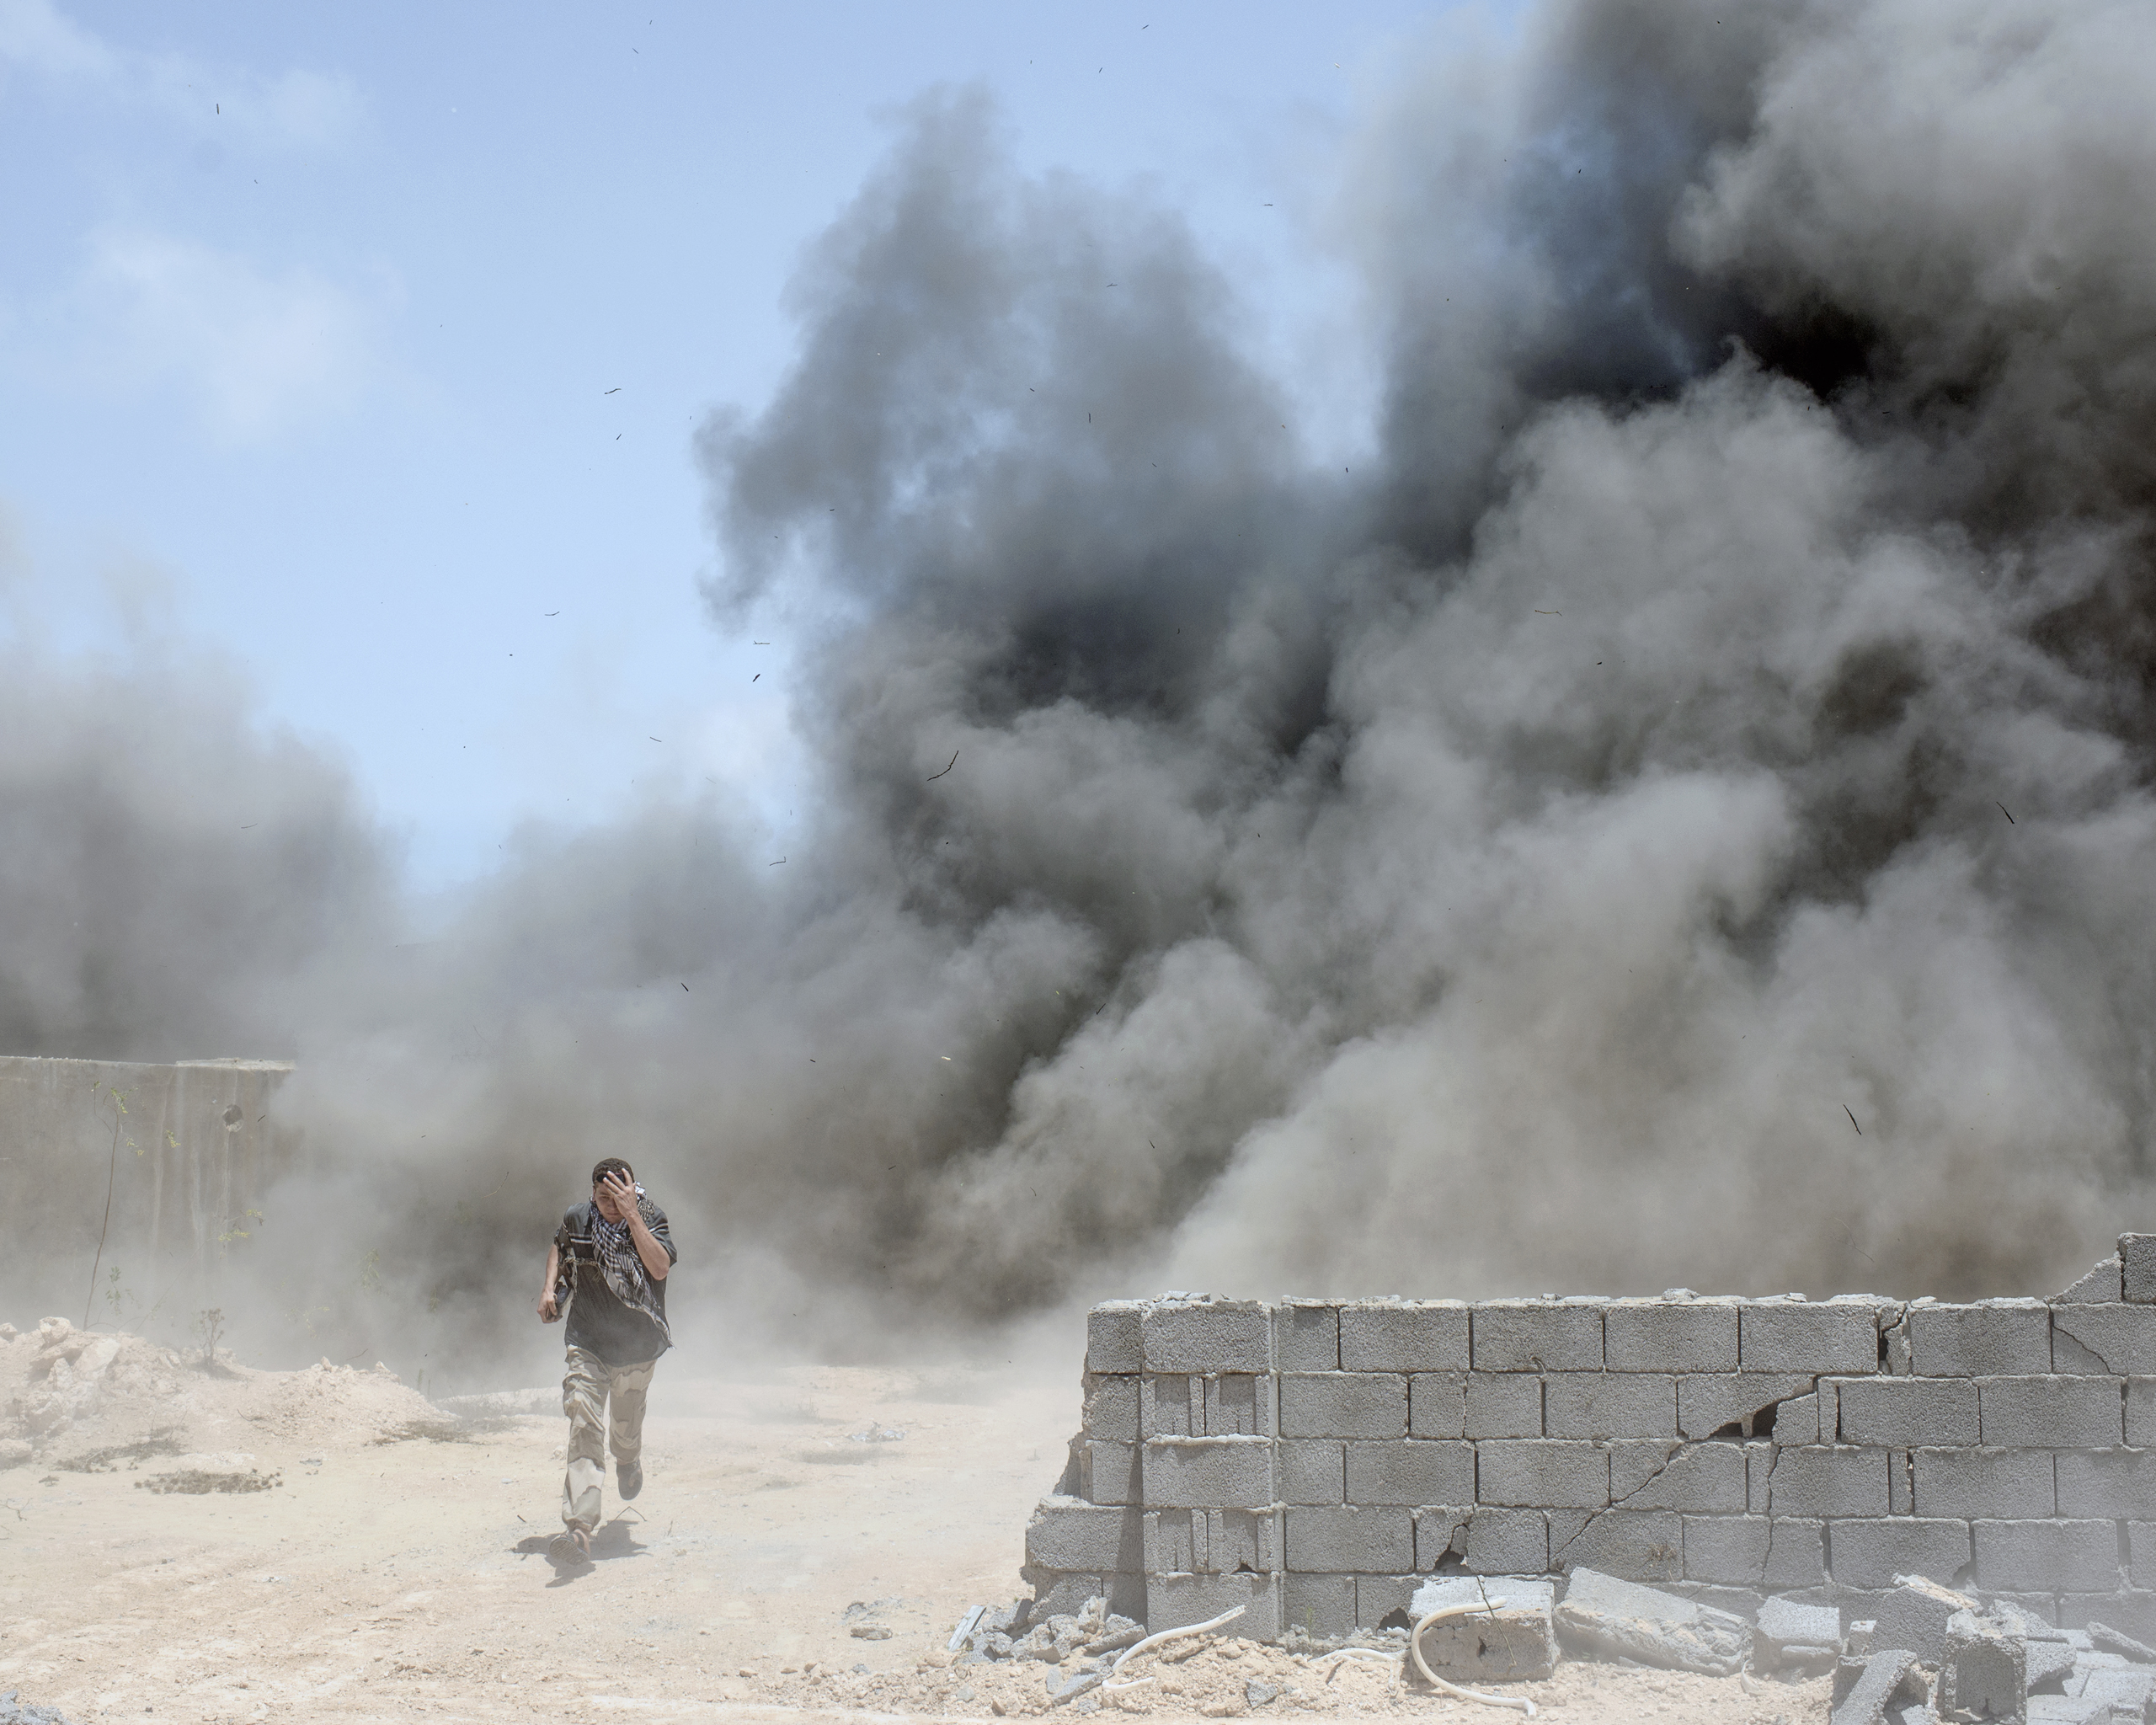 A Libyan fighter runs from a landmine explosion which injured three of his comrades, Sirt, Libya, July 2016